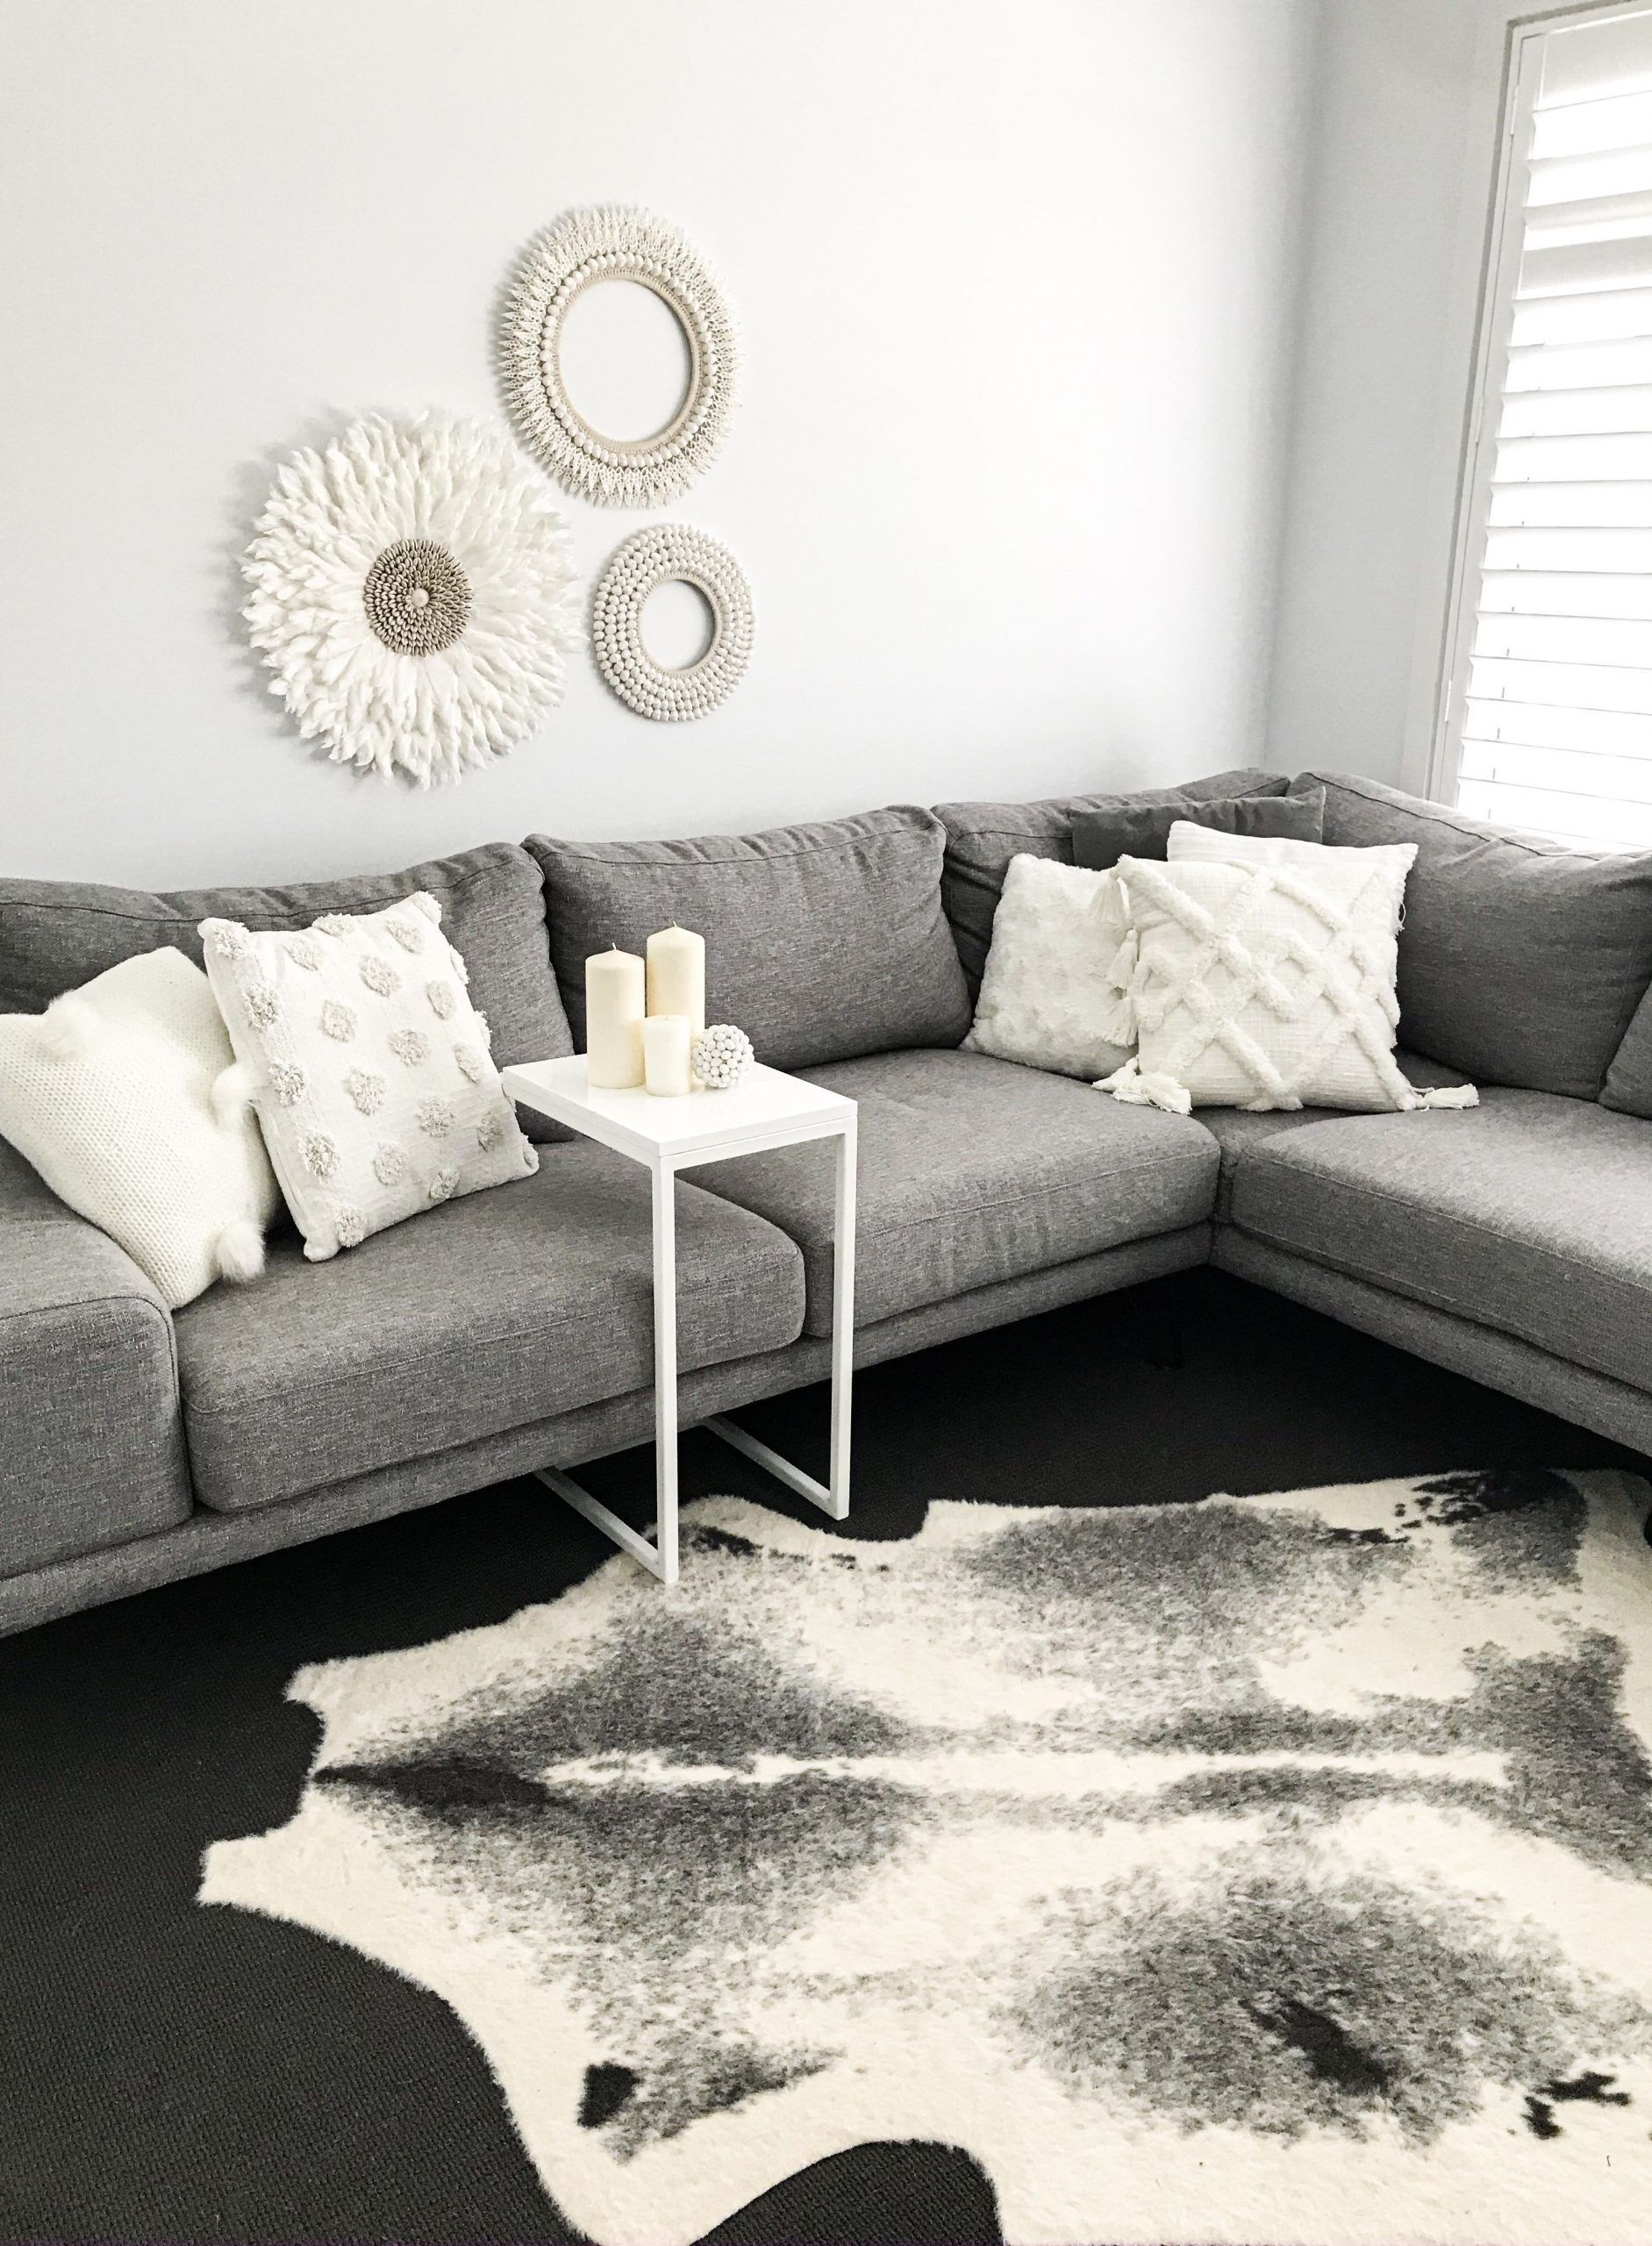 Living Room Designs Grey Couch Living Room Grey Couch Styling Kmart Rug Kmar Couch Designs In 2020 Grey Couch Living Room Living Room Style Couches Living Room